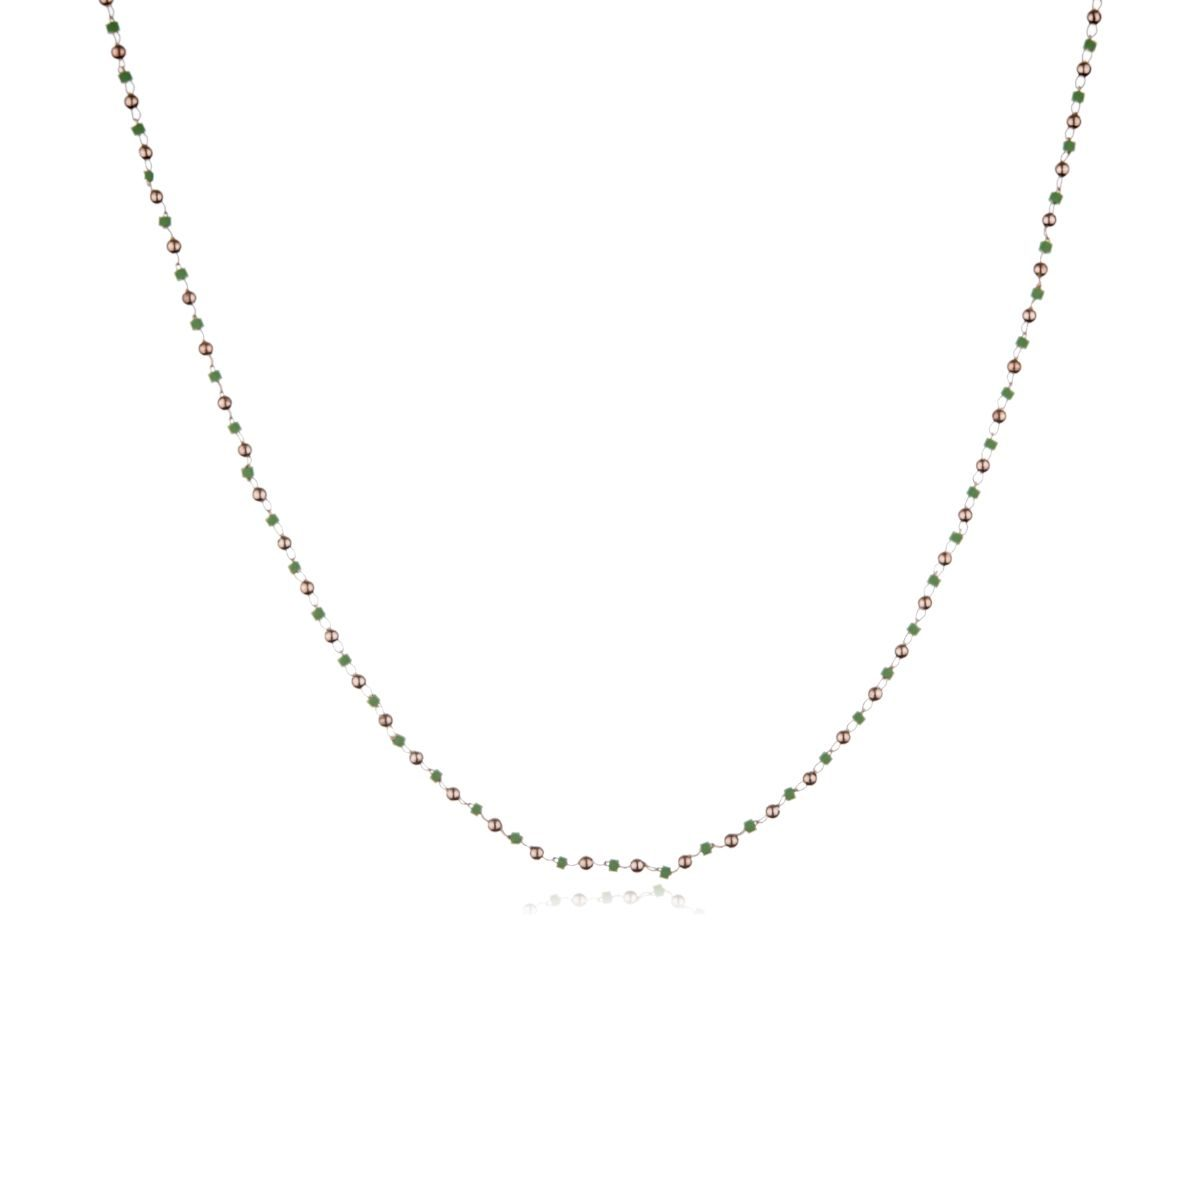 Costa Brava necklace with 8 karat gold finish and small green beads